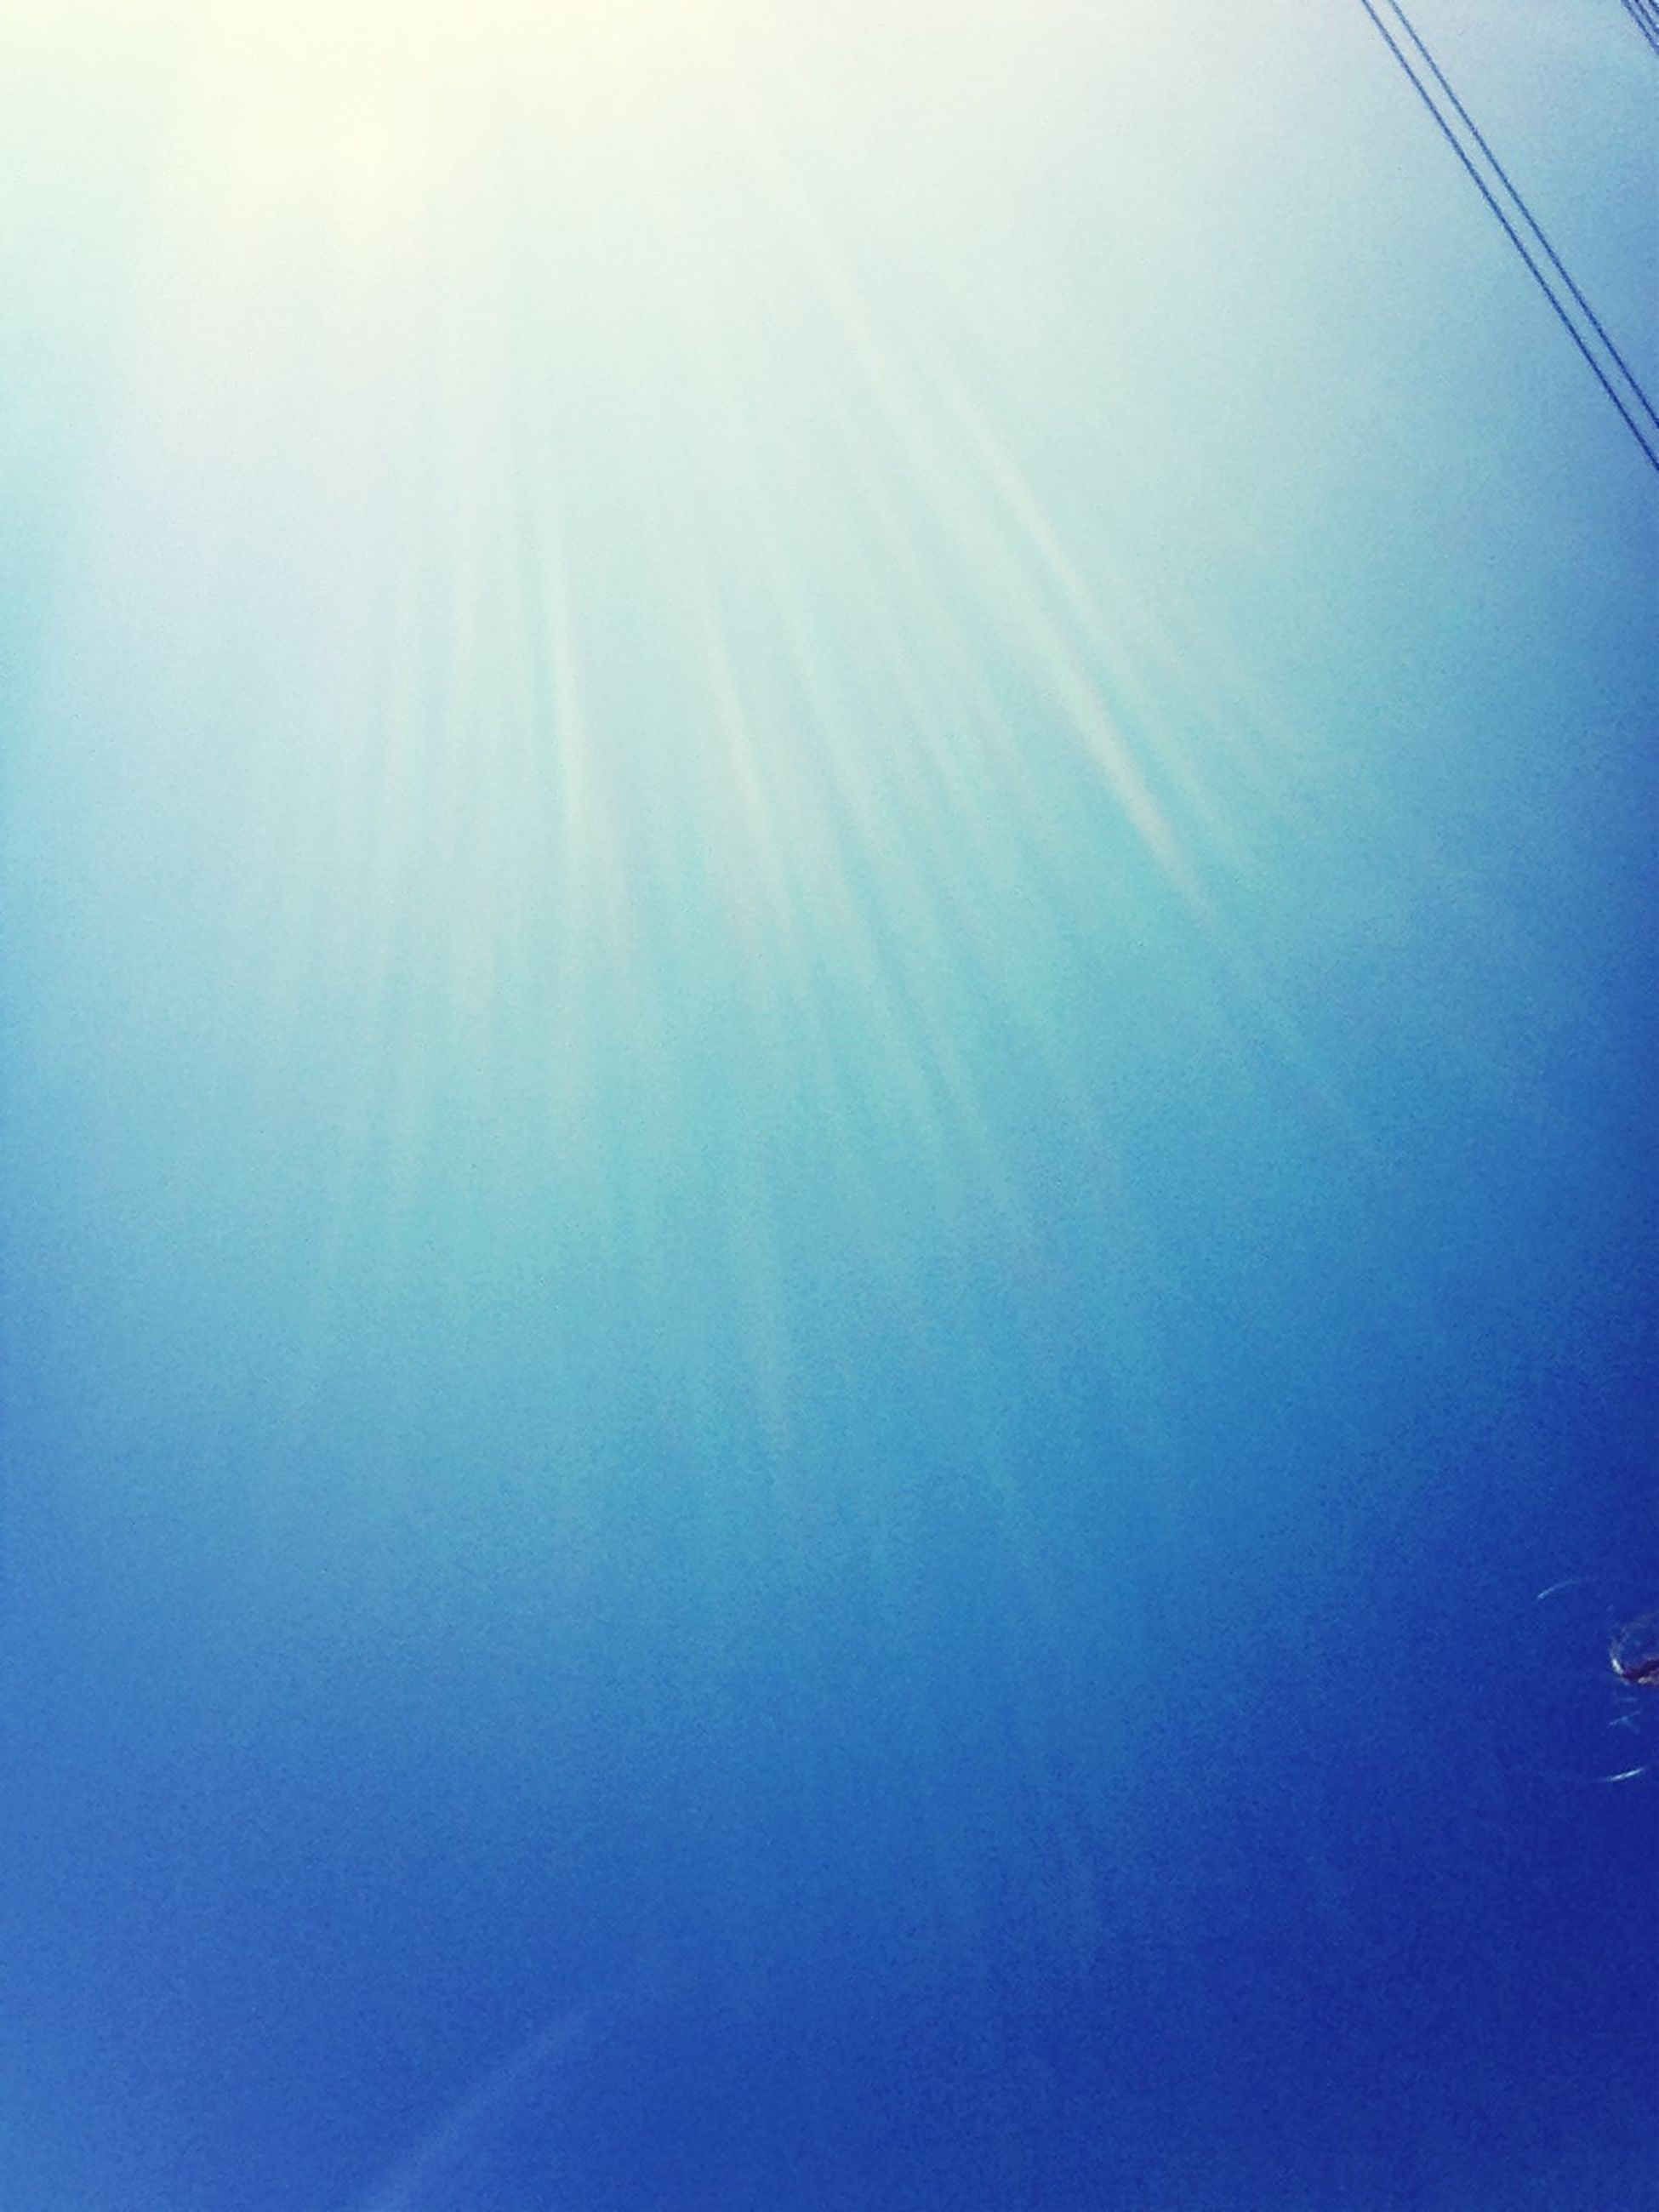 low angle view, blue, clear sky, beauty in nature, tranquility, sun, nature, sunbeam, copy space, sky, scenics, sunlight, tranquil scene, vapor trail, lens flare, day, outdoors, no people, bright, idyllic